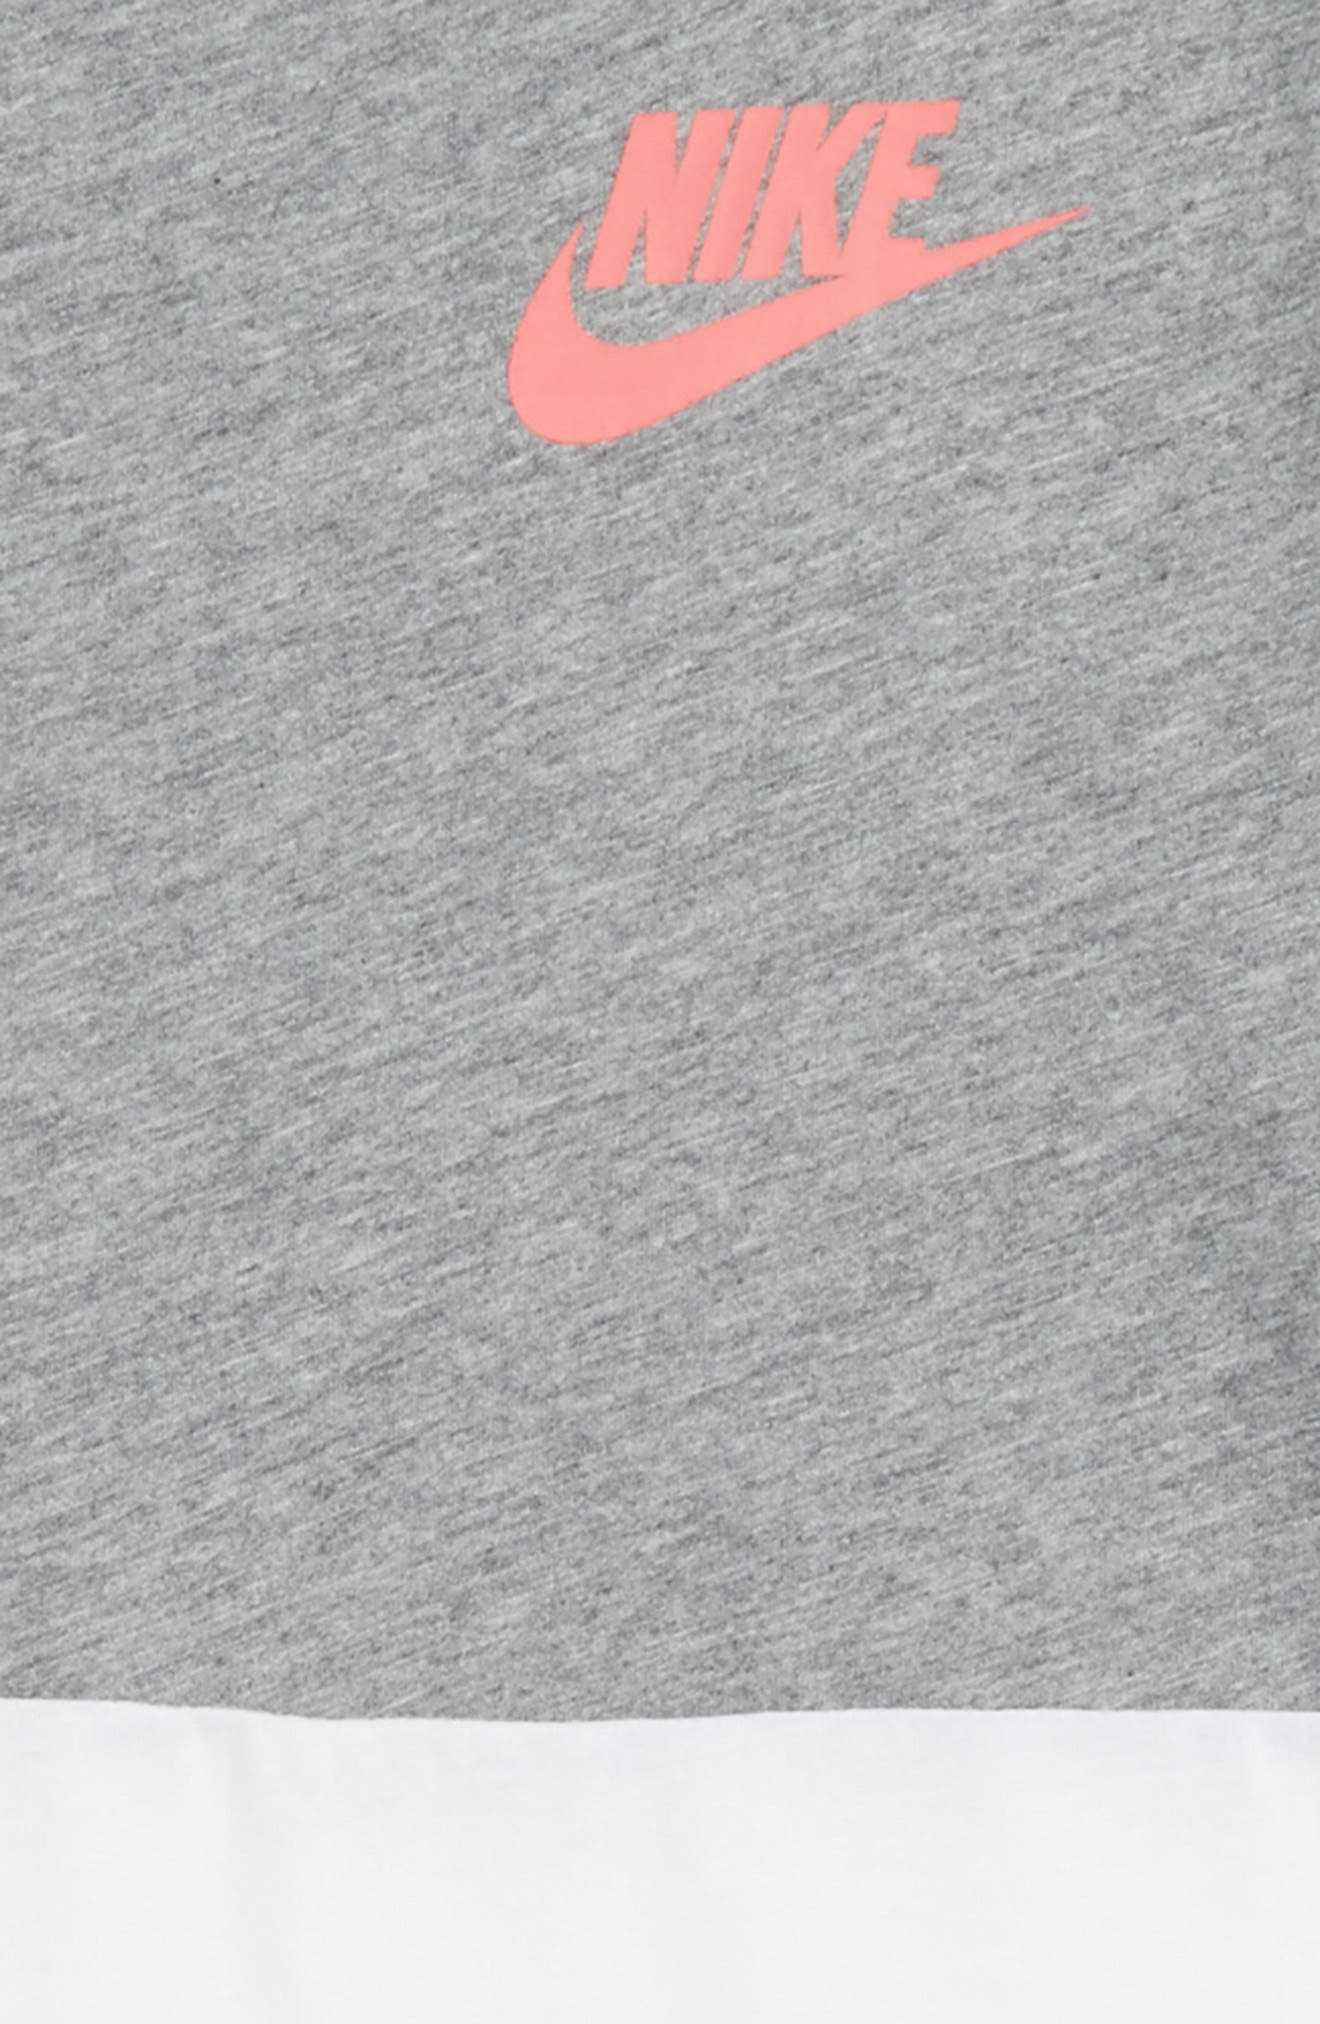 Sportswear Graphic Tee,                             Alternate thumbnail 2, color,                             Carbon Heather/ White/ Coral